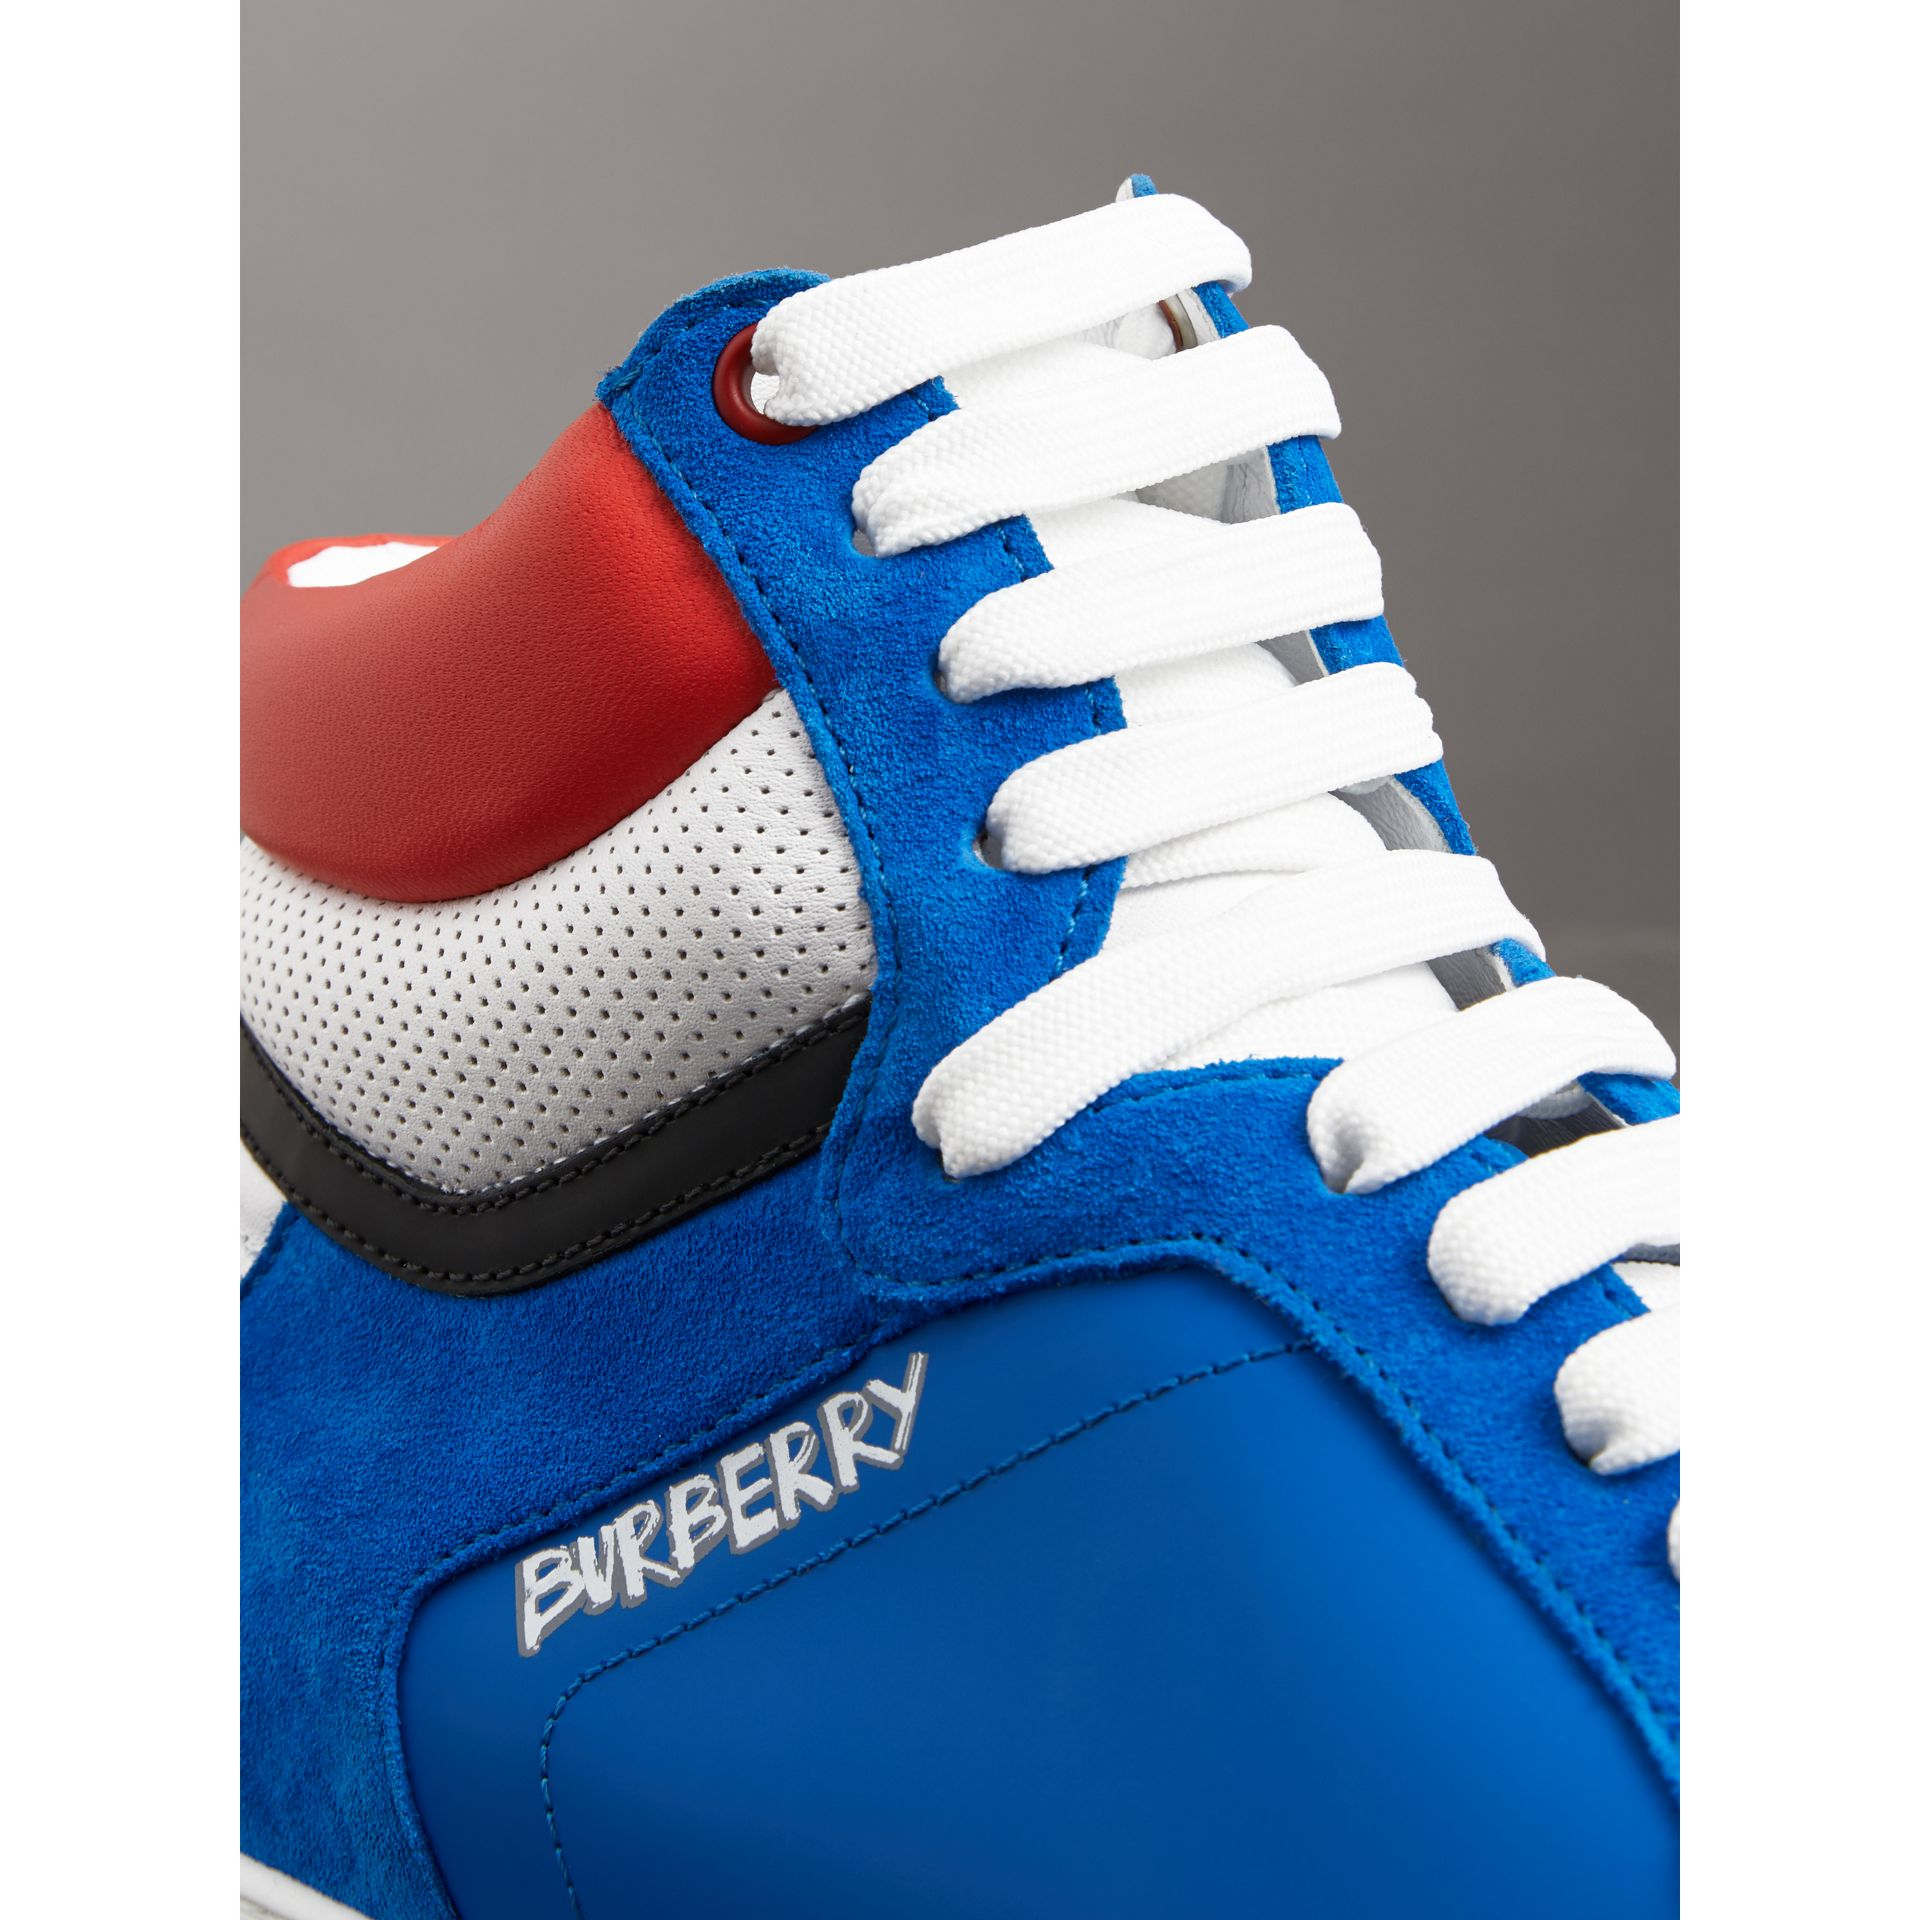 Leather and Suede High-top Sneakers in Bright Sky Blue - Men | Burberry - gallery image 1